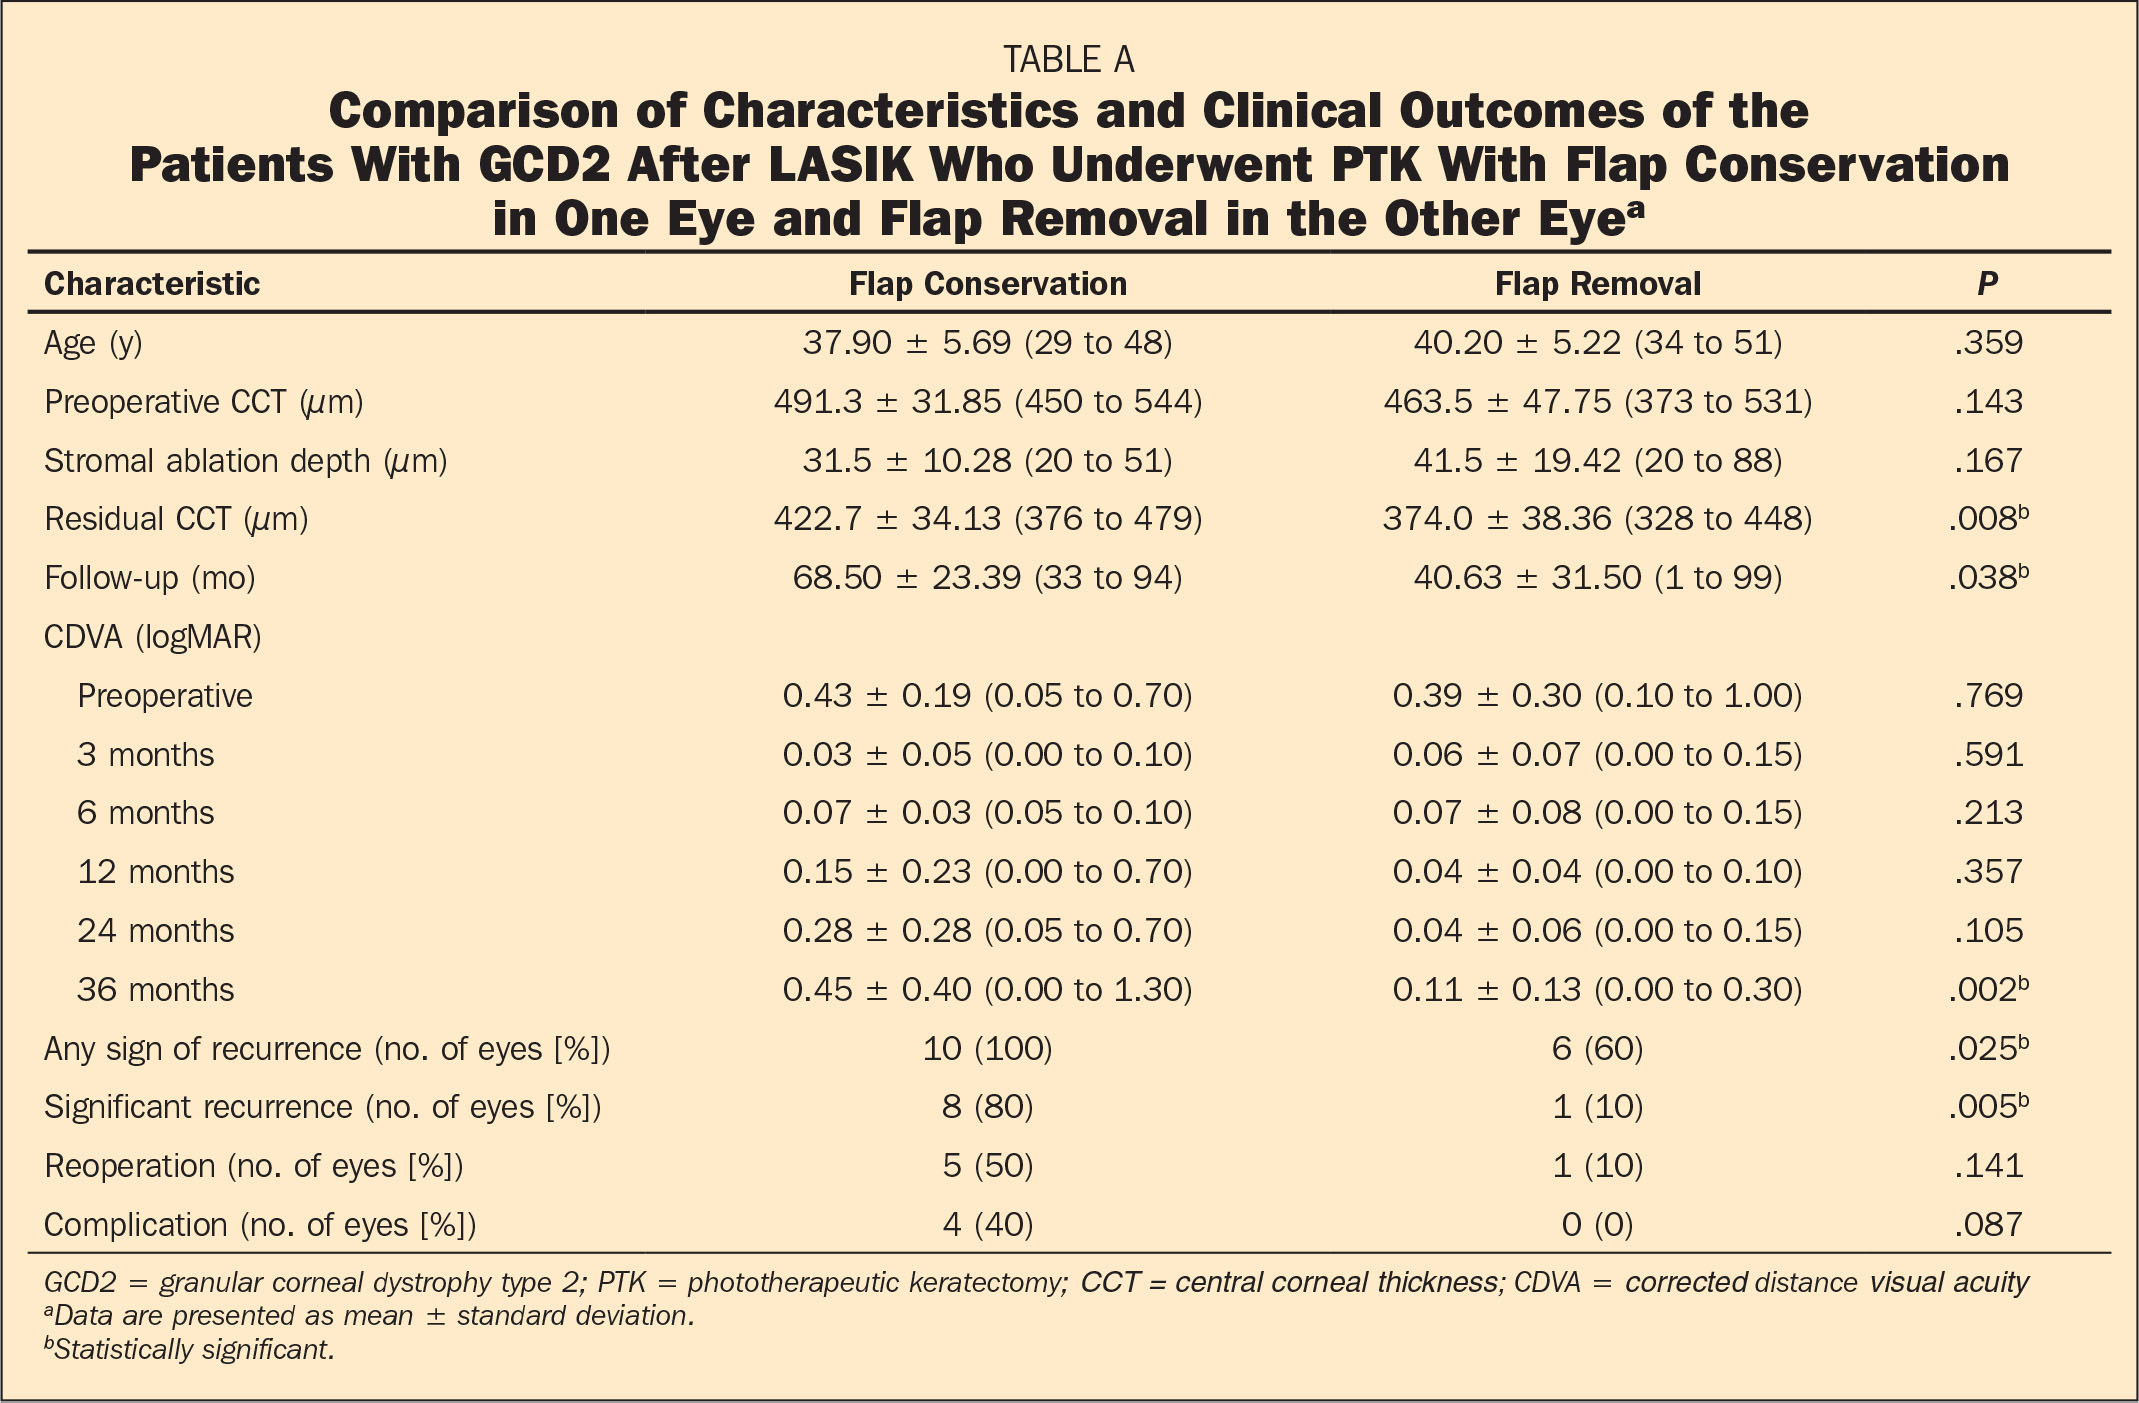 Comparison of Characteristics and Clinical Outcomes of the Patients With GCD2 After LASIK Who Underwent PTK With Flap Conservation in One Eye and Flap Removal in the Other Eyea